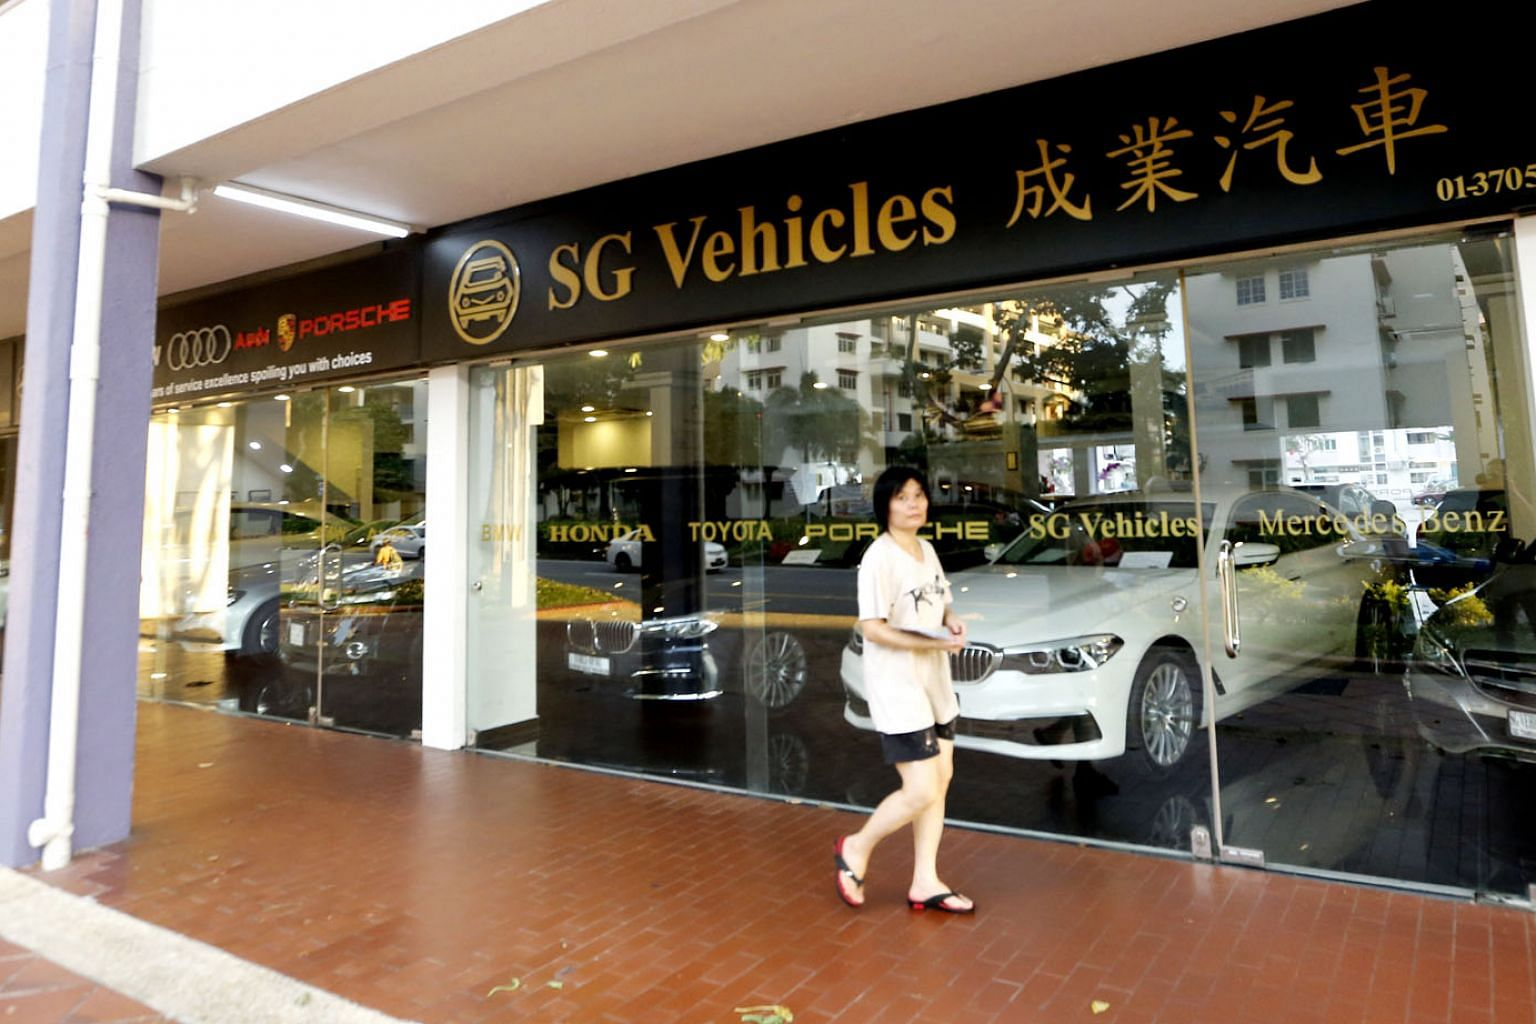 The Consumers Association of Singapore asked SG Vehicles to sign a voluntary compliance agreement in July 2017, but it refused. The Competition and Consumer Commission of Singapore filed an injunction later that year.